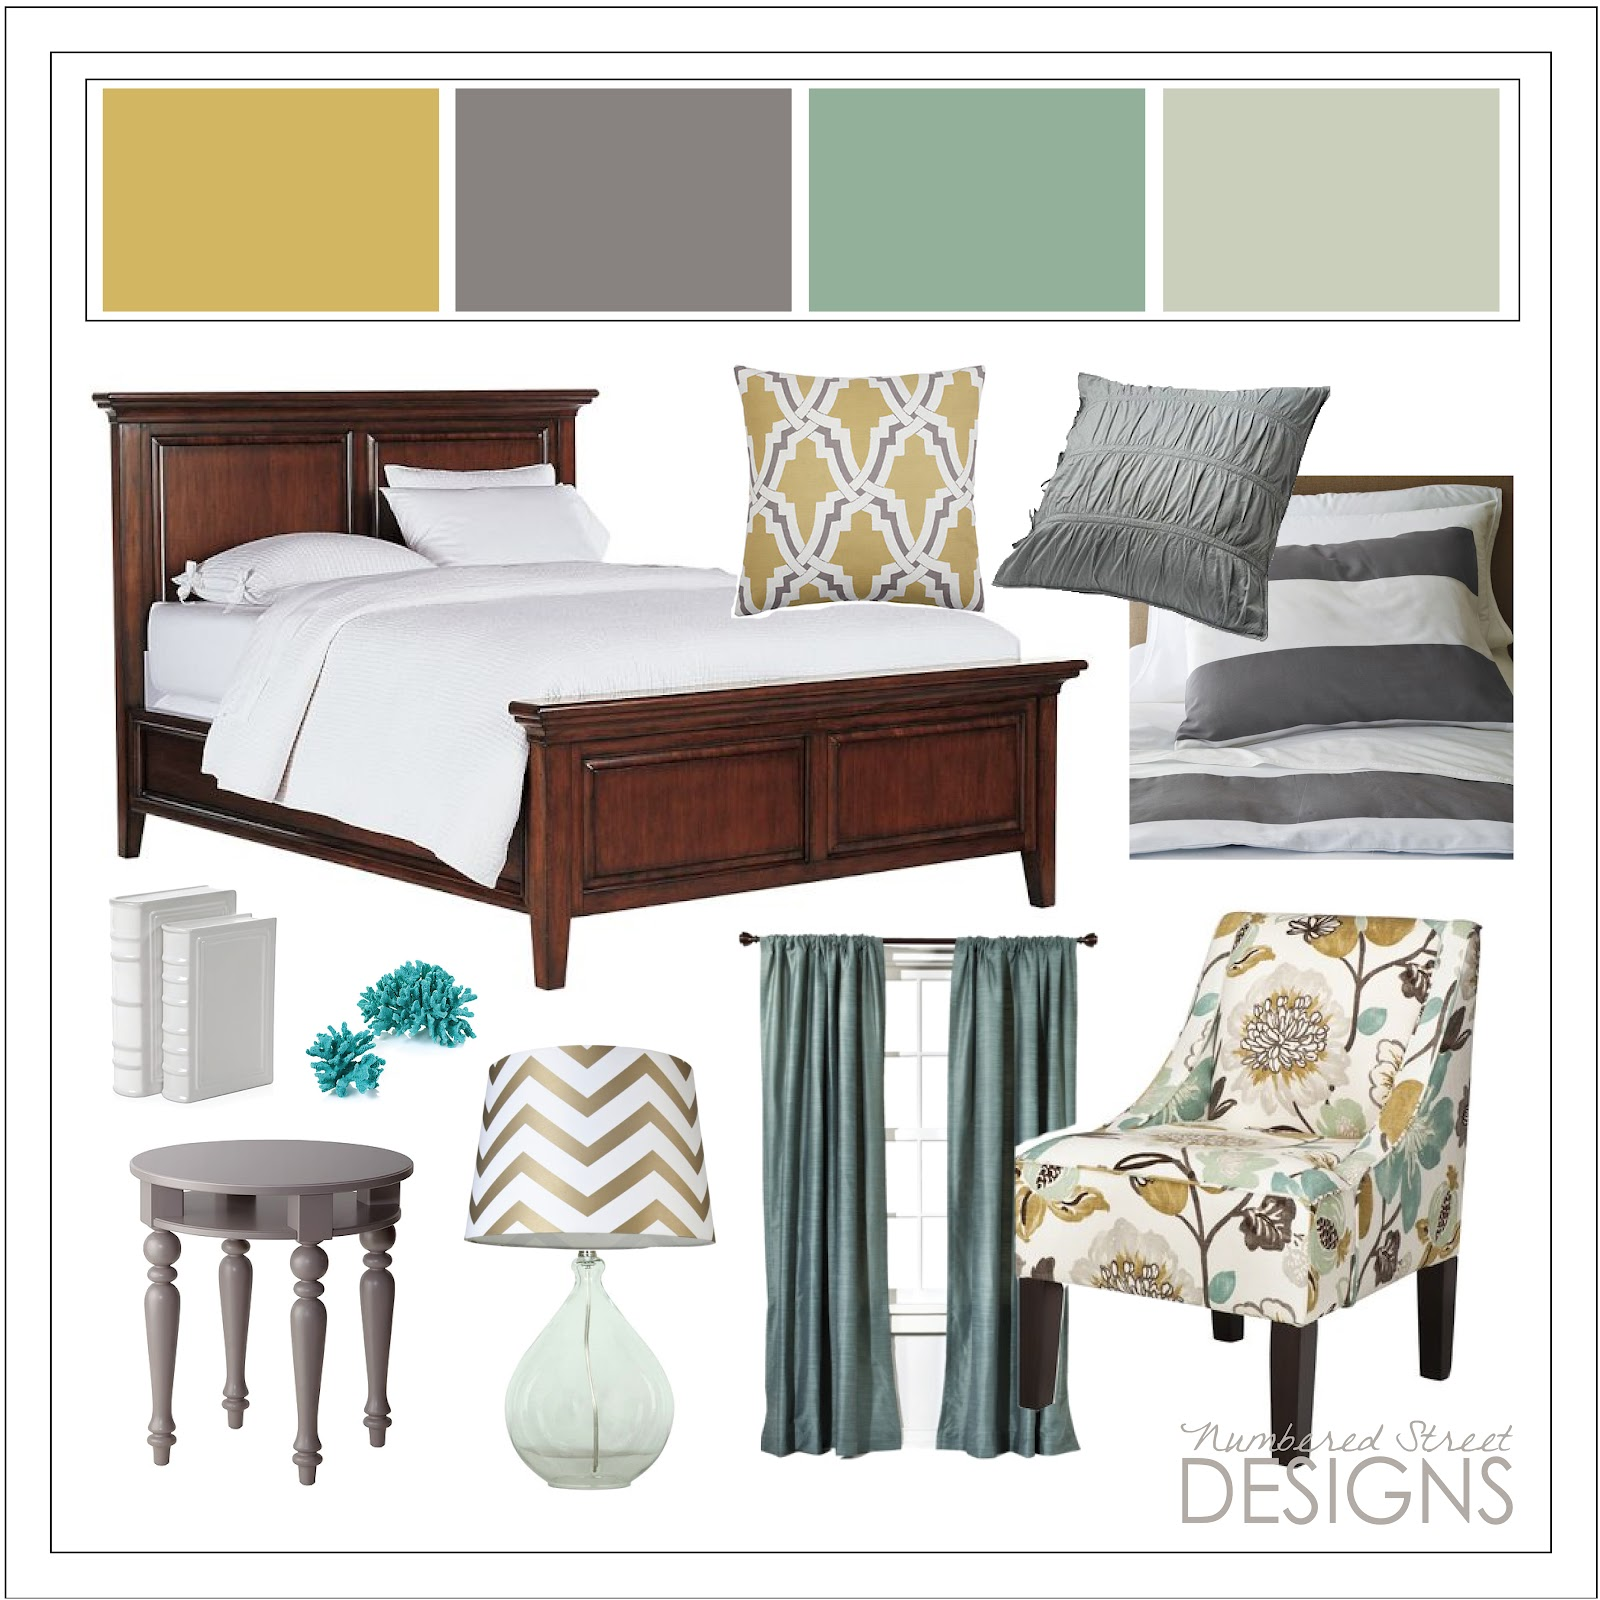 Numbered street designs my dream bedroom - Design my dream bedroom ...